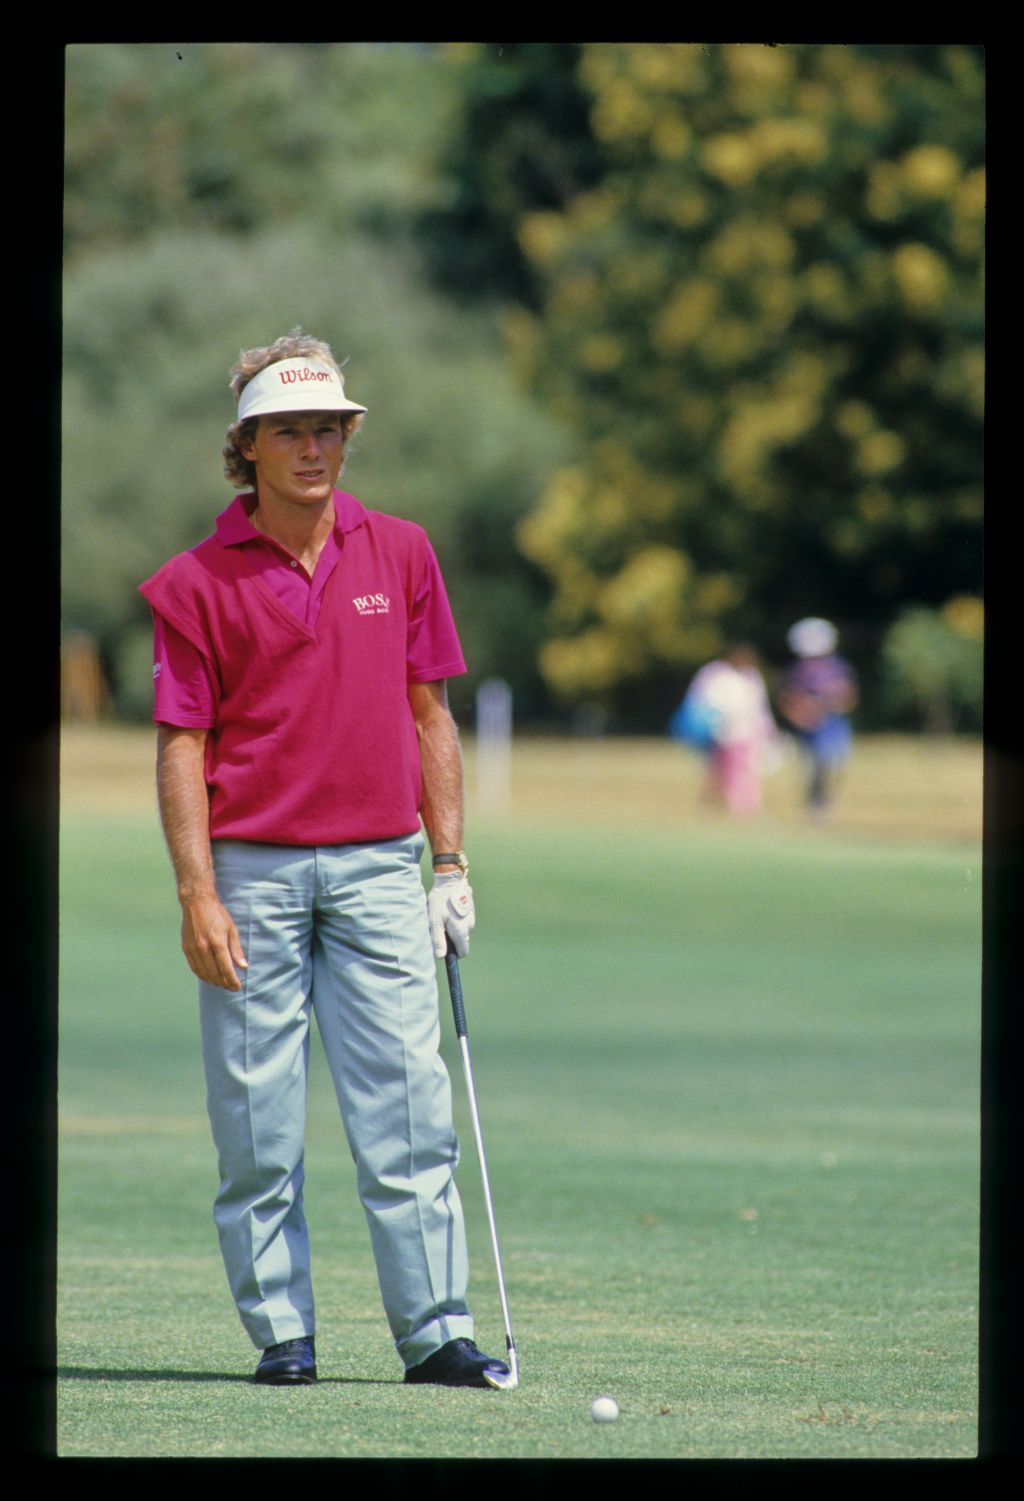 Bernhard Langer preparing to hit from the fairway during the 1986 Australian Masters